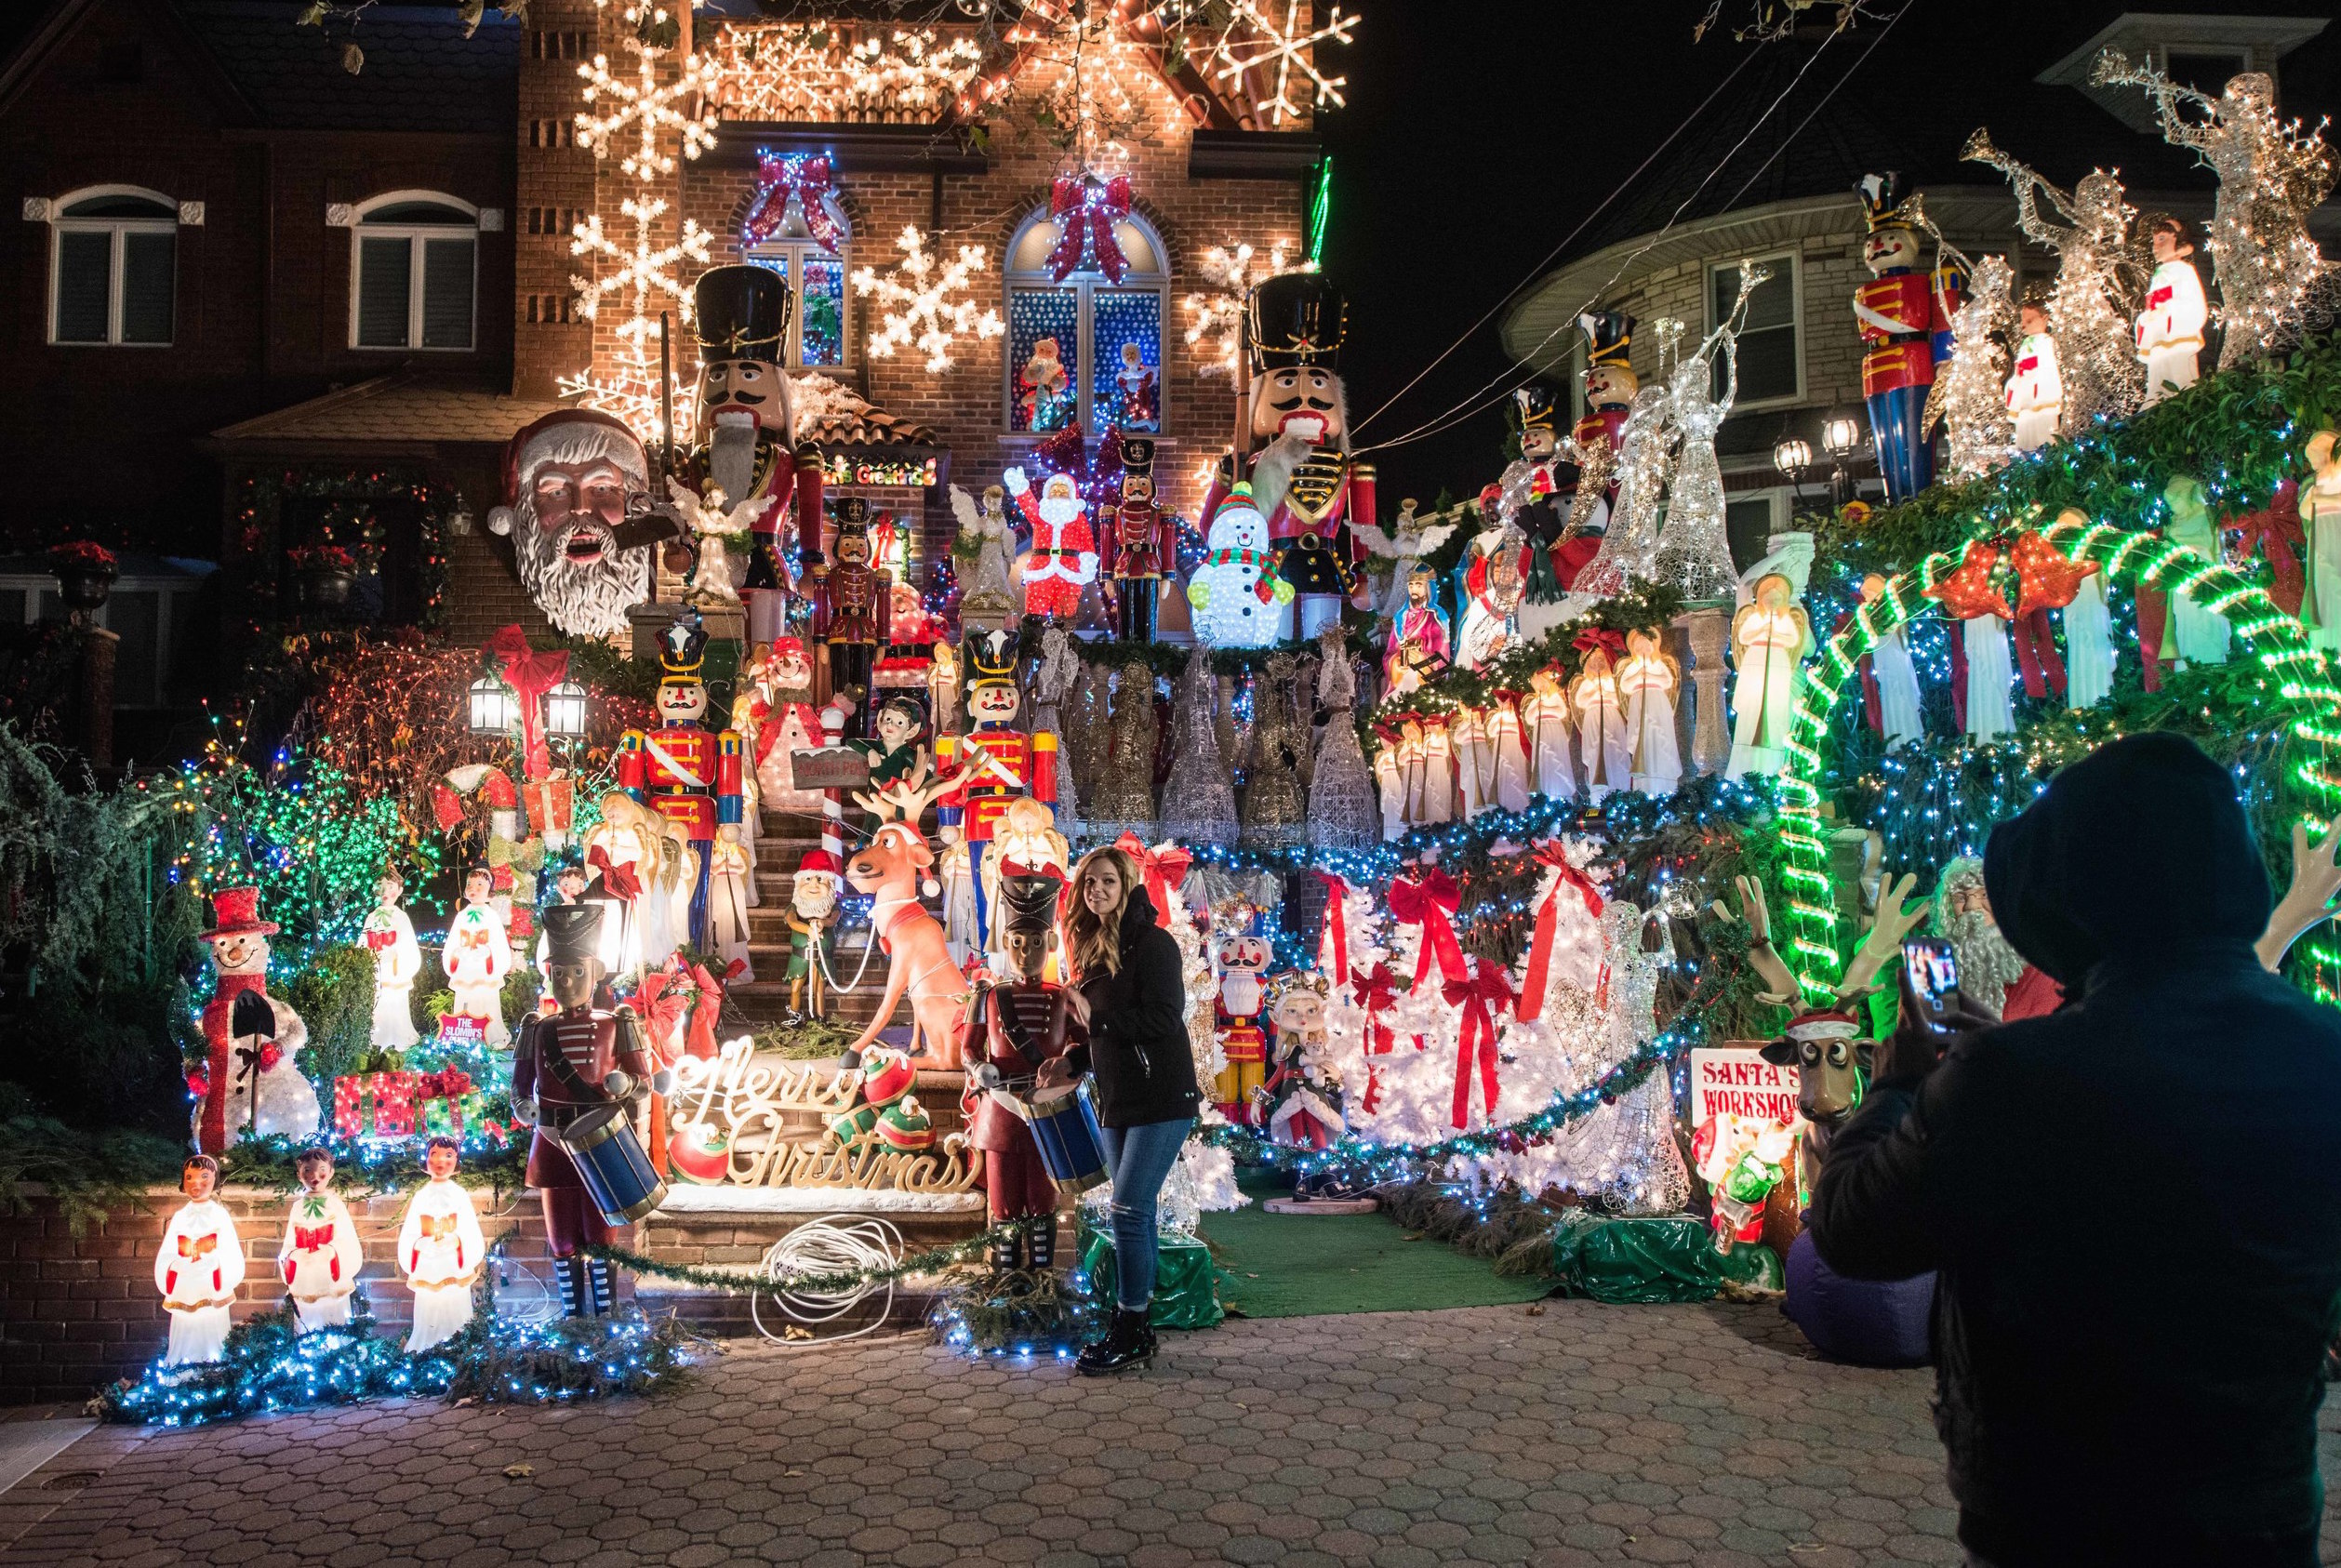 Dyker Heights Brooklyn Christmas Lights.Dyker Heights Christmas Lights 2019 Guide With Tour Info Tips